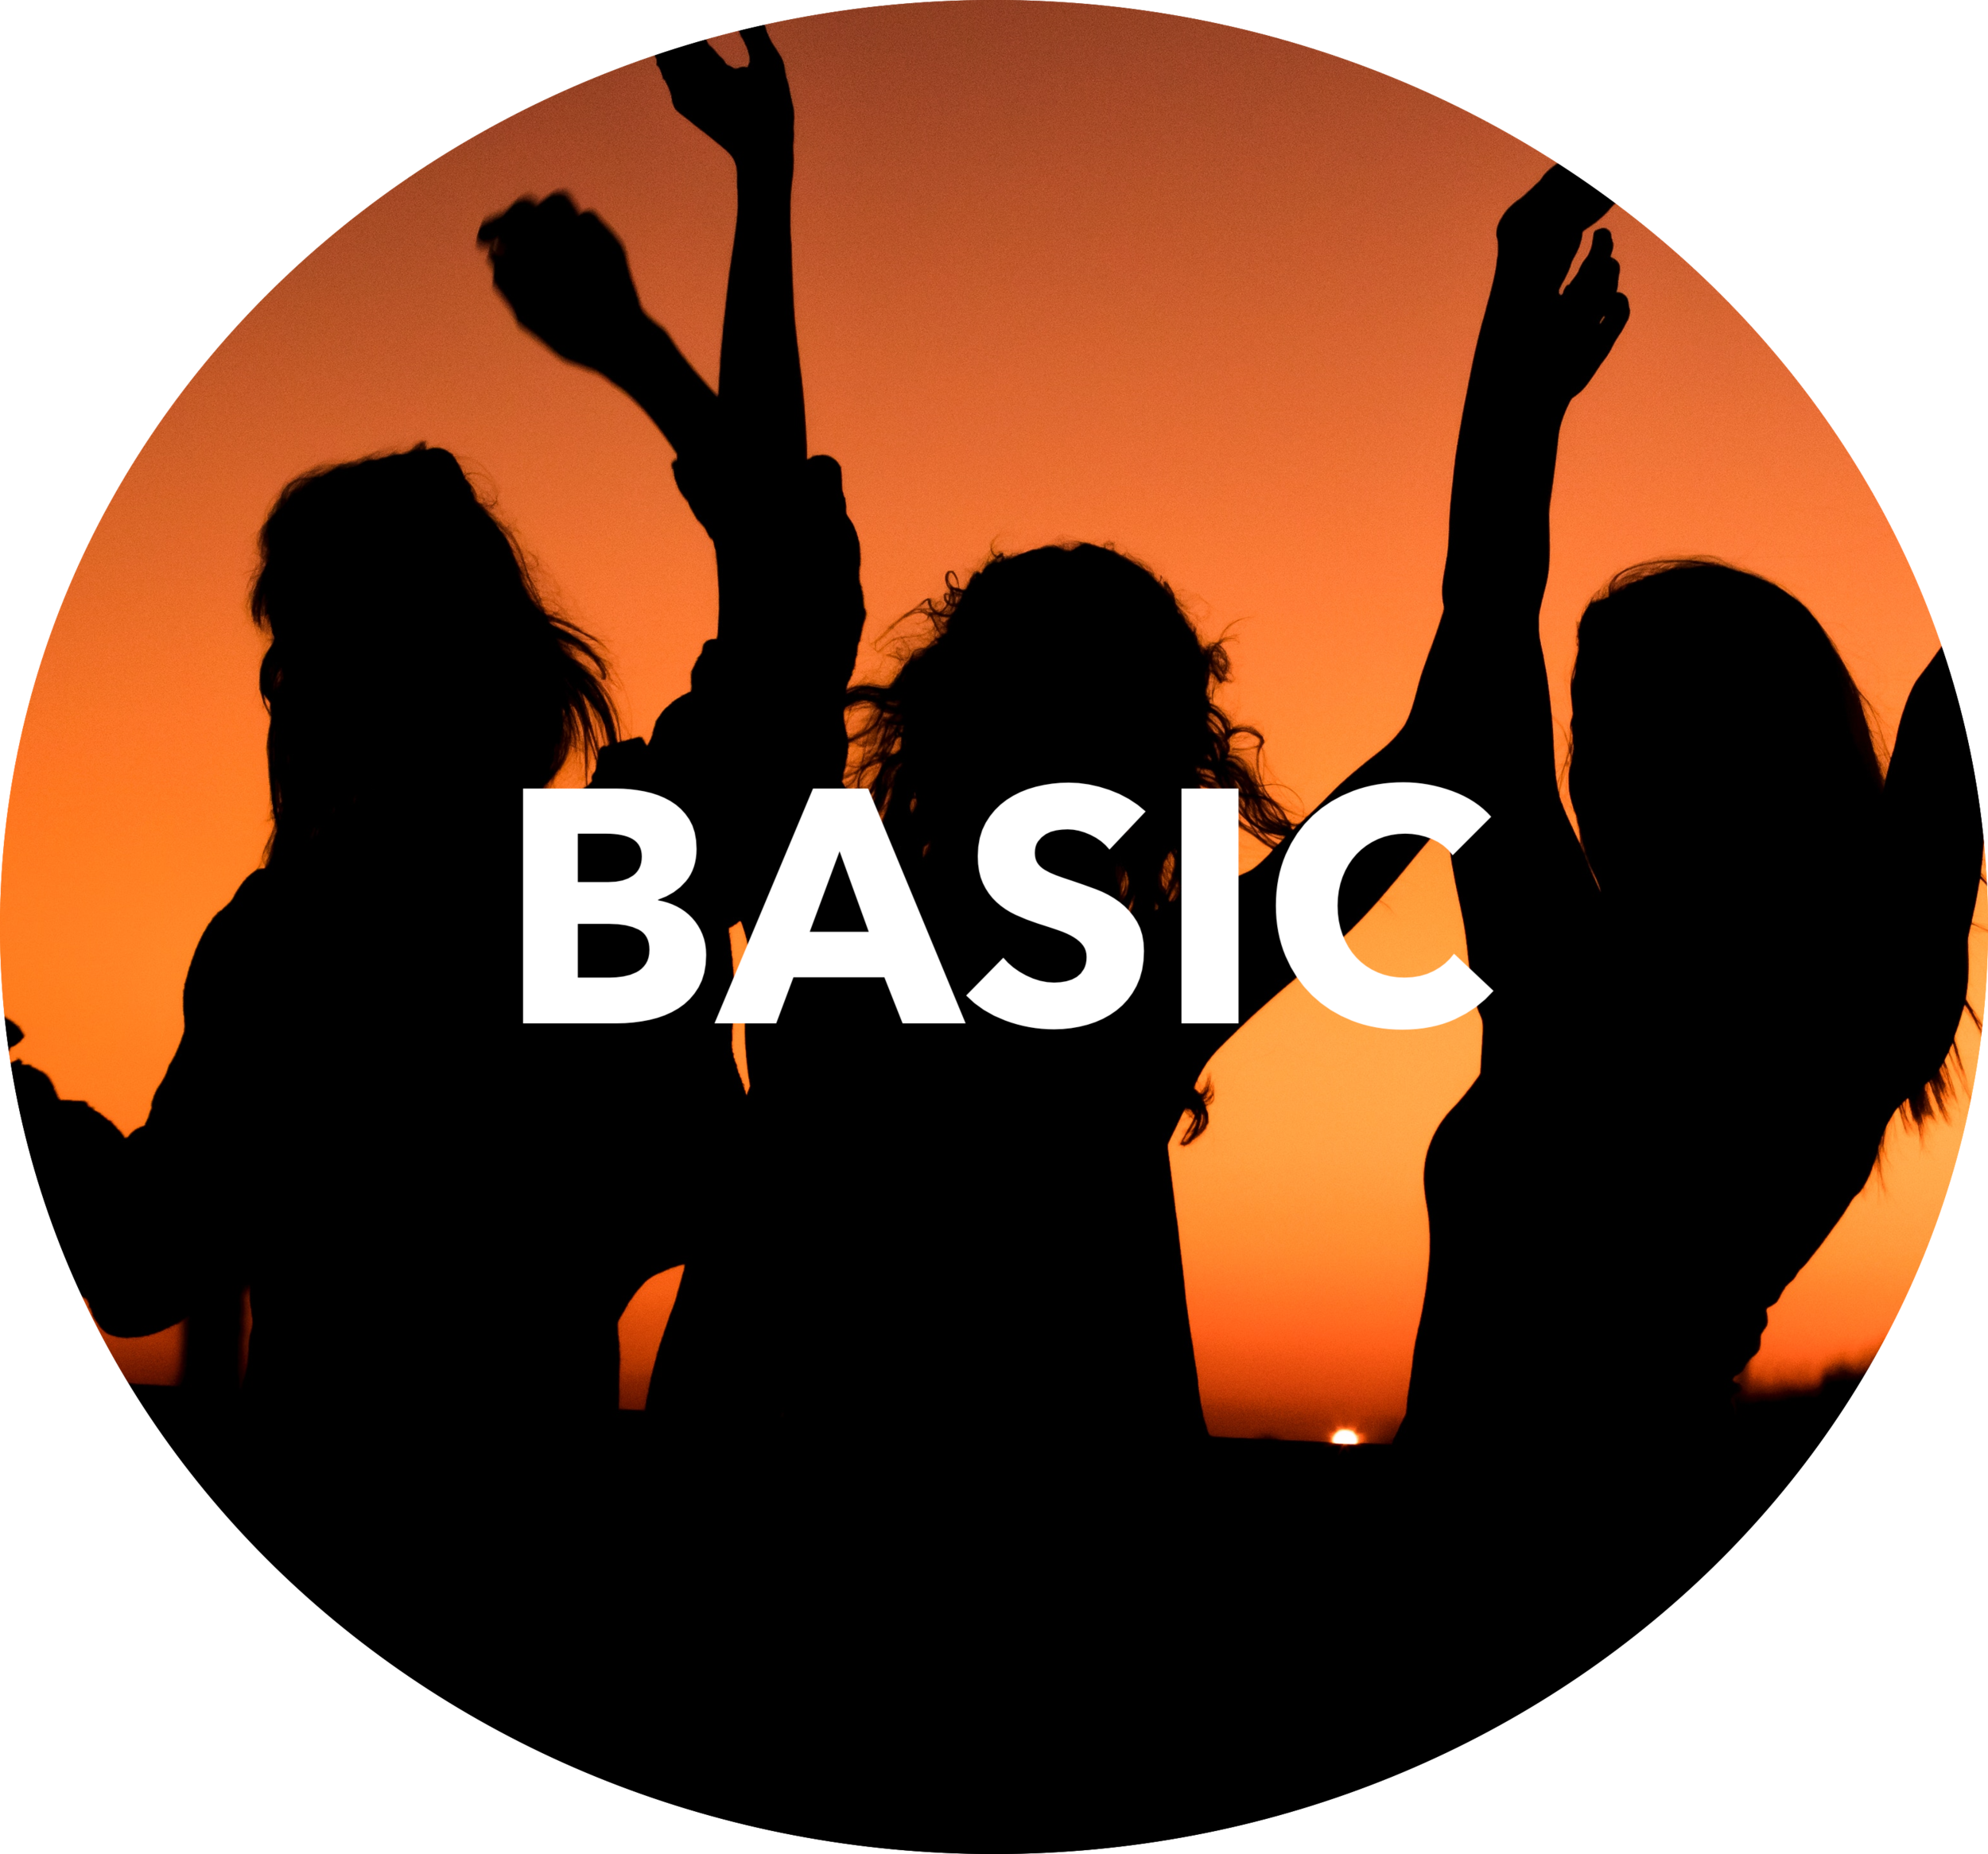 BASIC SERVICE - $499 PER MONTH(1 YEAR COMMITMENT)1. 500 INVITATIONS TO CONNECT, CUSTOM MESSAGES SENT, & PROFILES VISITED2. 100+ CONNECTIONS ADDED TO GROW YOUR IDEAL CLIENT NETWORK.3. 1 MESSAGE TO EVERY PERSON WHO ACCEPTS THE CONNECTION TO FACILITATE A BOOKING4. 1 JOB TITLE TARGETS & INDUSTRY TARGETS5. Google Doc CUSTOMIZED HIGH CONVERTING PERSONAL CONTACT MESSAGES MONTHLY6. 30 MINUTE ZOOM CALL CONSULTATION TO HELP OPTIMIZE YOUR PROFILE FOR MAXIMUM PERFORMANCE7. 24/7 VIDEO WALKIE TALKIE CORRESPONDANCE———————————————————WHY PEOPLE LIKE THIS?1. START SMALL AND TRY IT ON2. BUILD SOME CONSISTENT ACTIVITY ON LINKEDIN3. WANT MORE HANDS ON APPROACH IN THE LINKEDIN CAMPAIGNS